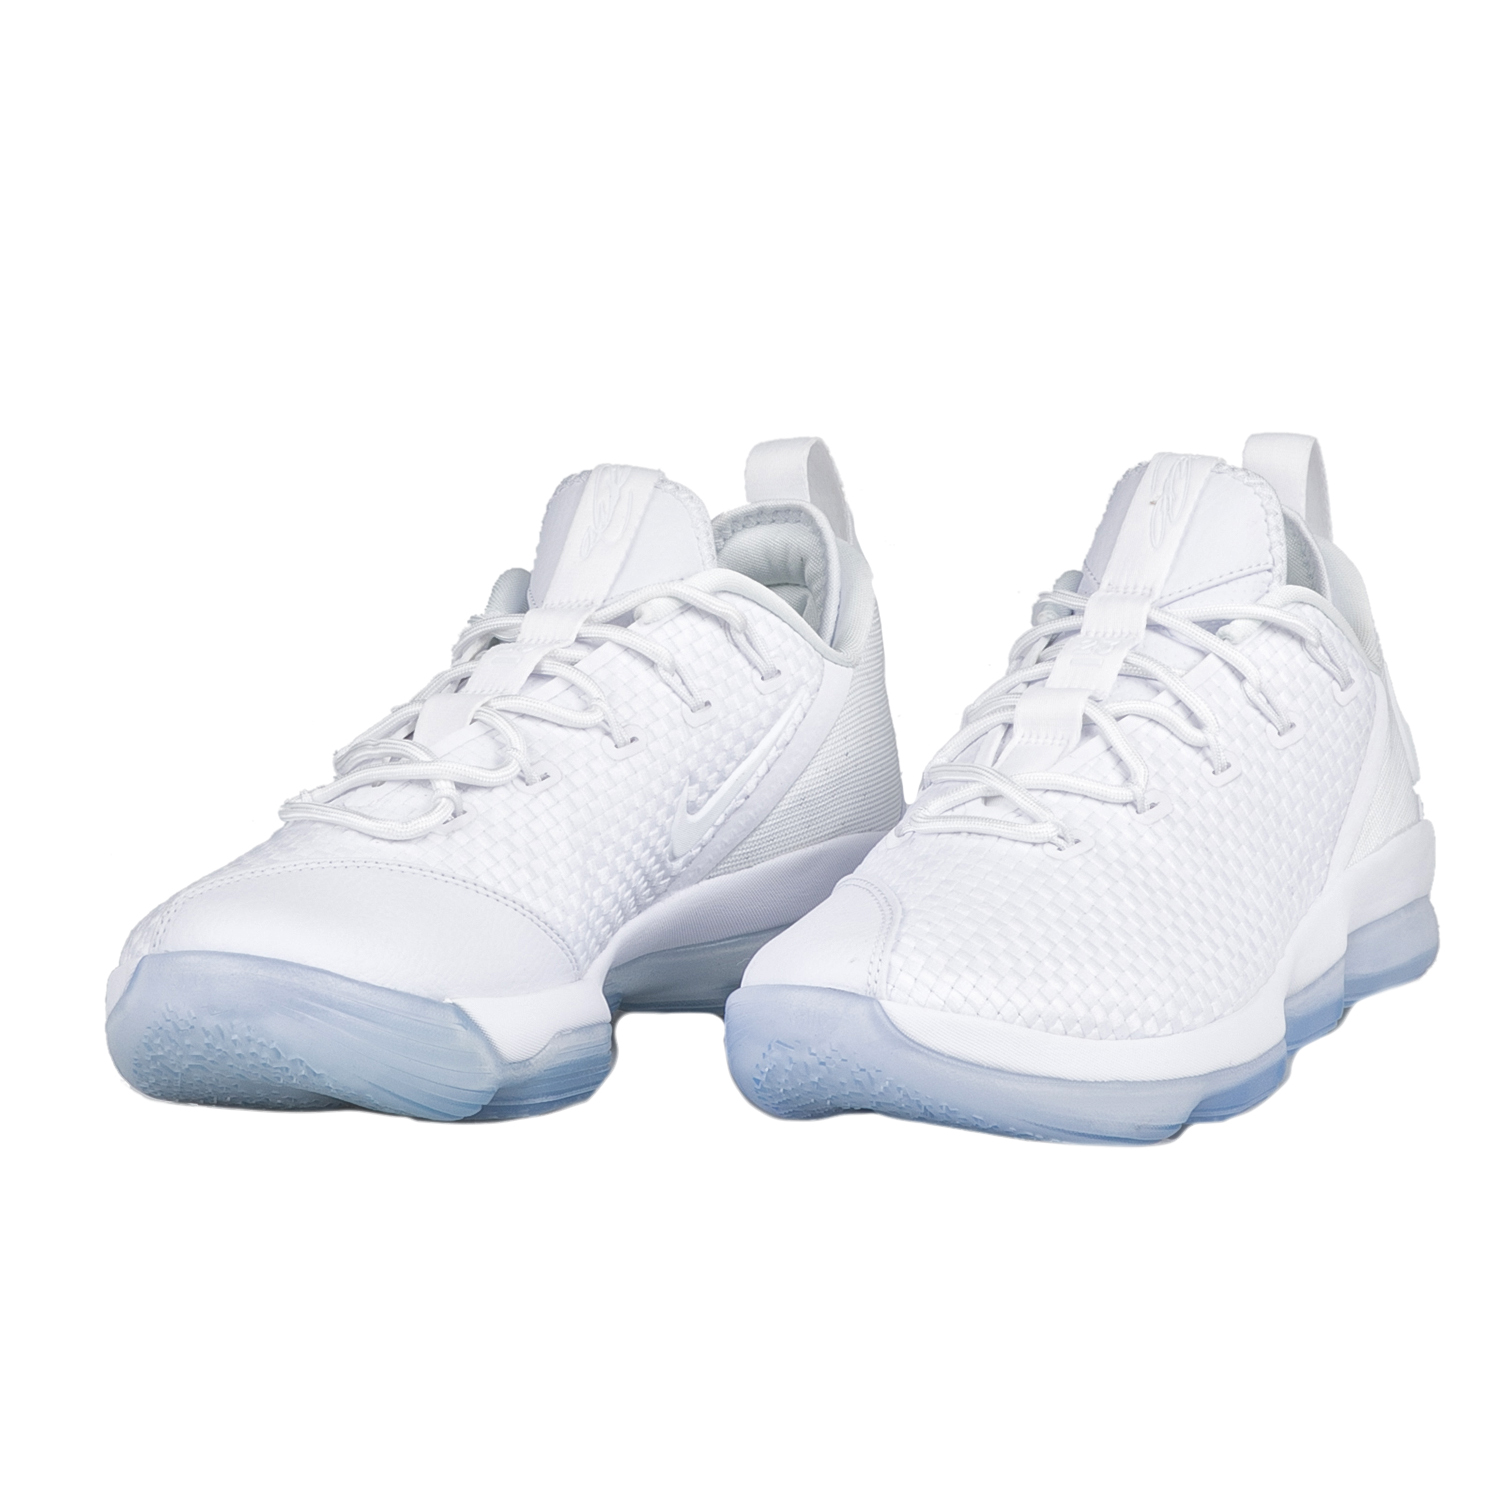 4f5af56f075 NIKE - Ανδρικά παπούτσια μπάσκετ NIKE DREAMCHASER 32 LOW λευκά ...